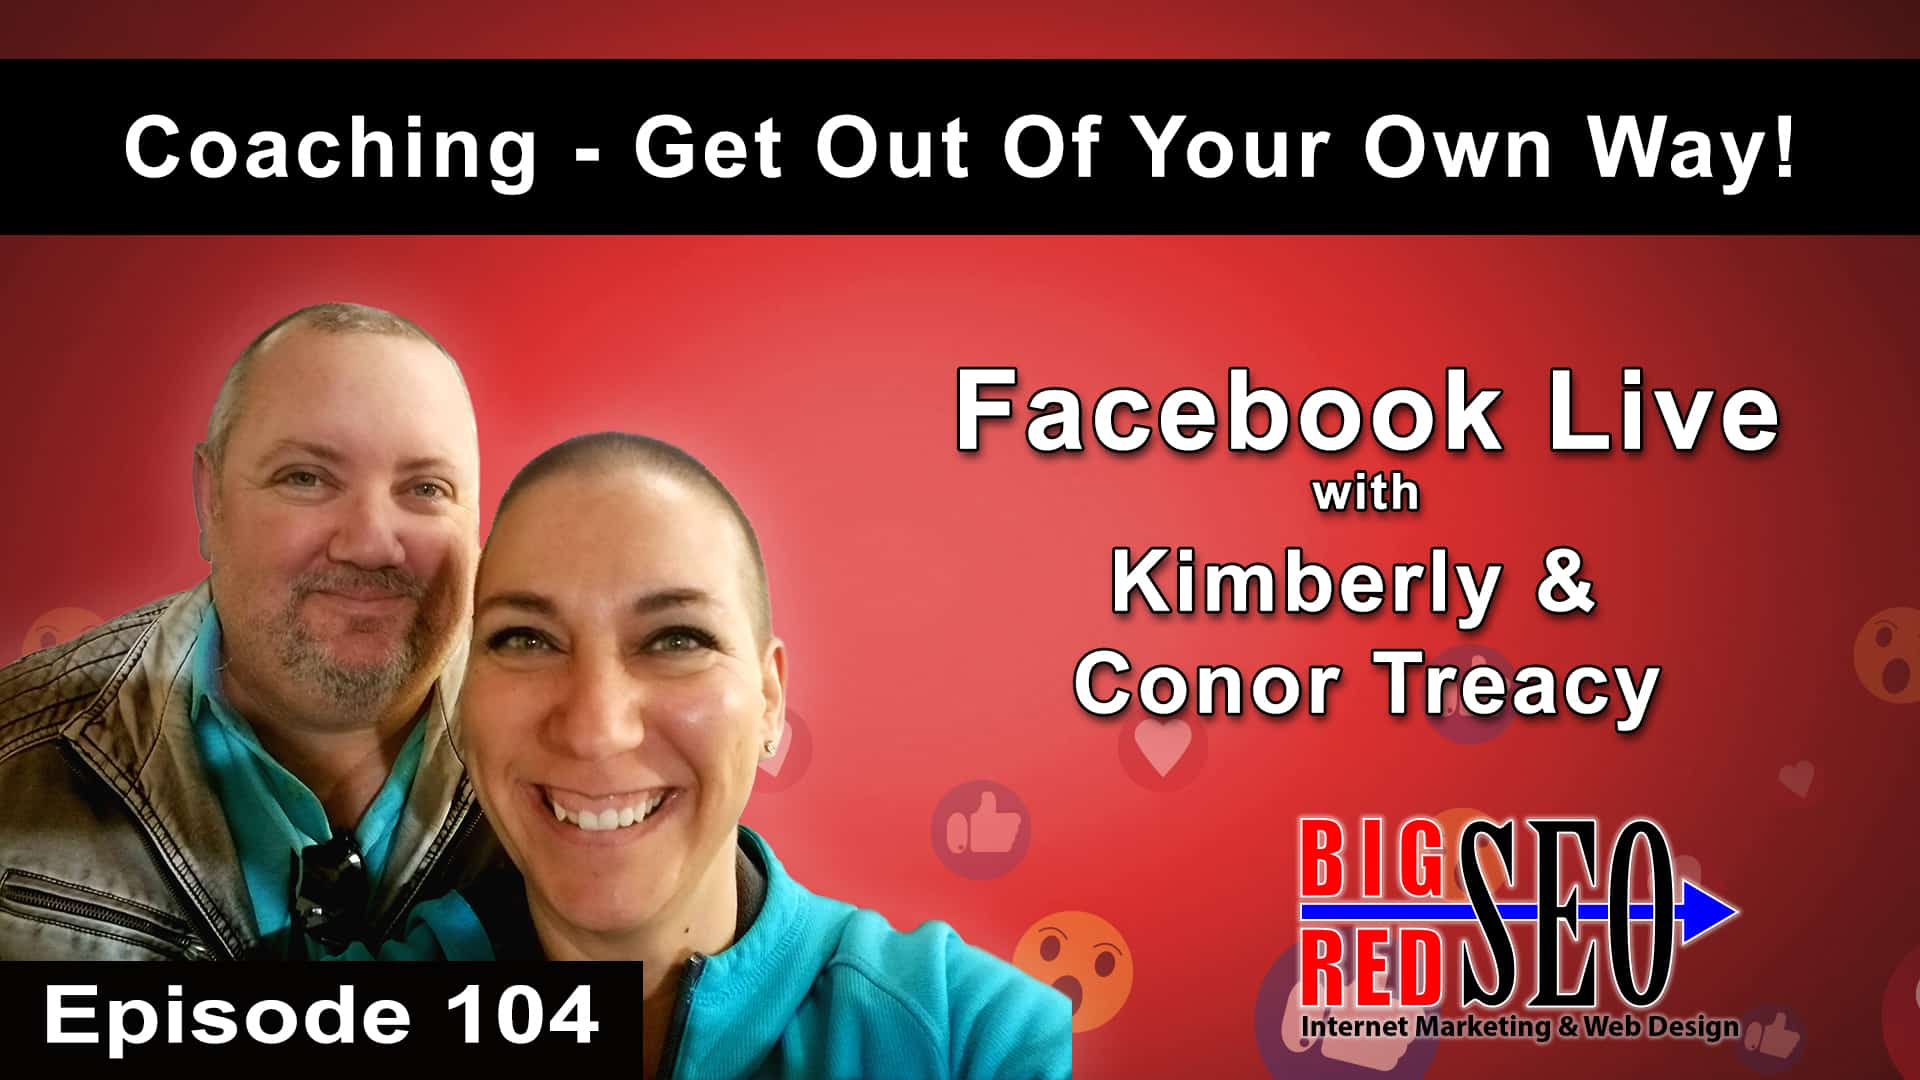 Business Coaching - It's Time To Get Out Of Your Own Way - Episode 104